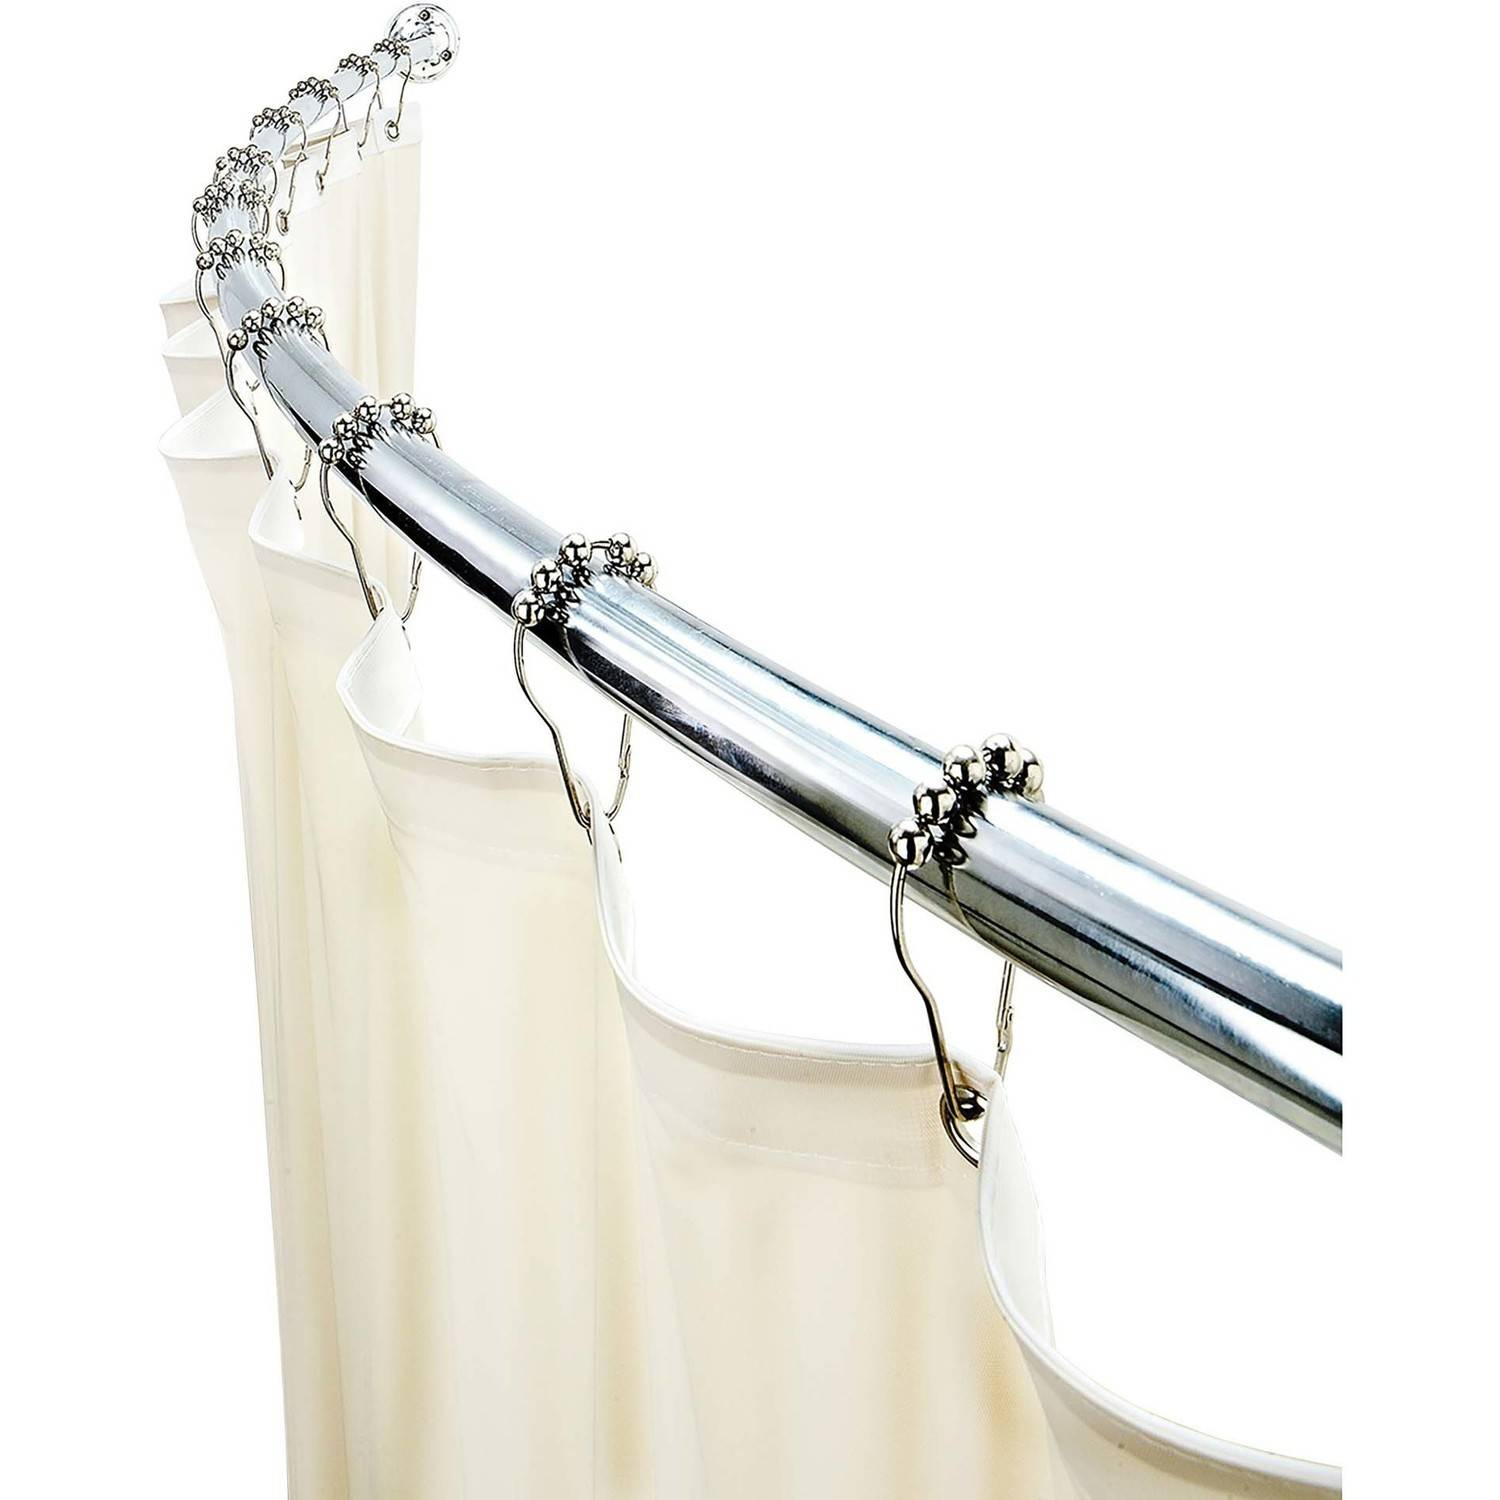 Heavy Duty Tension Shower Curtain Rod Interdesign Stainless Steel Shower Curtain Tension Rod